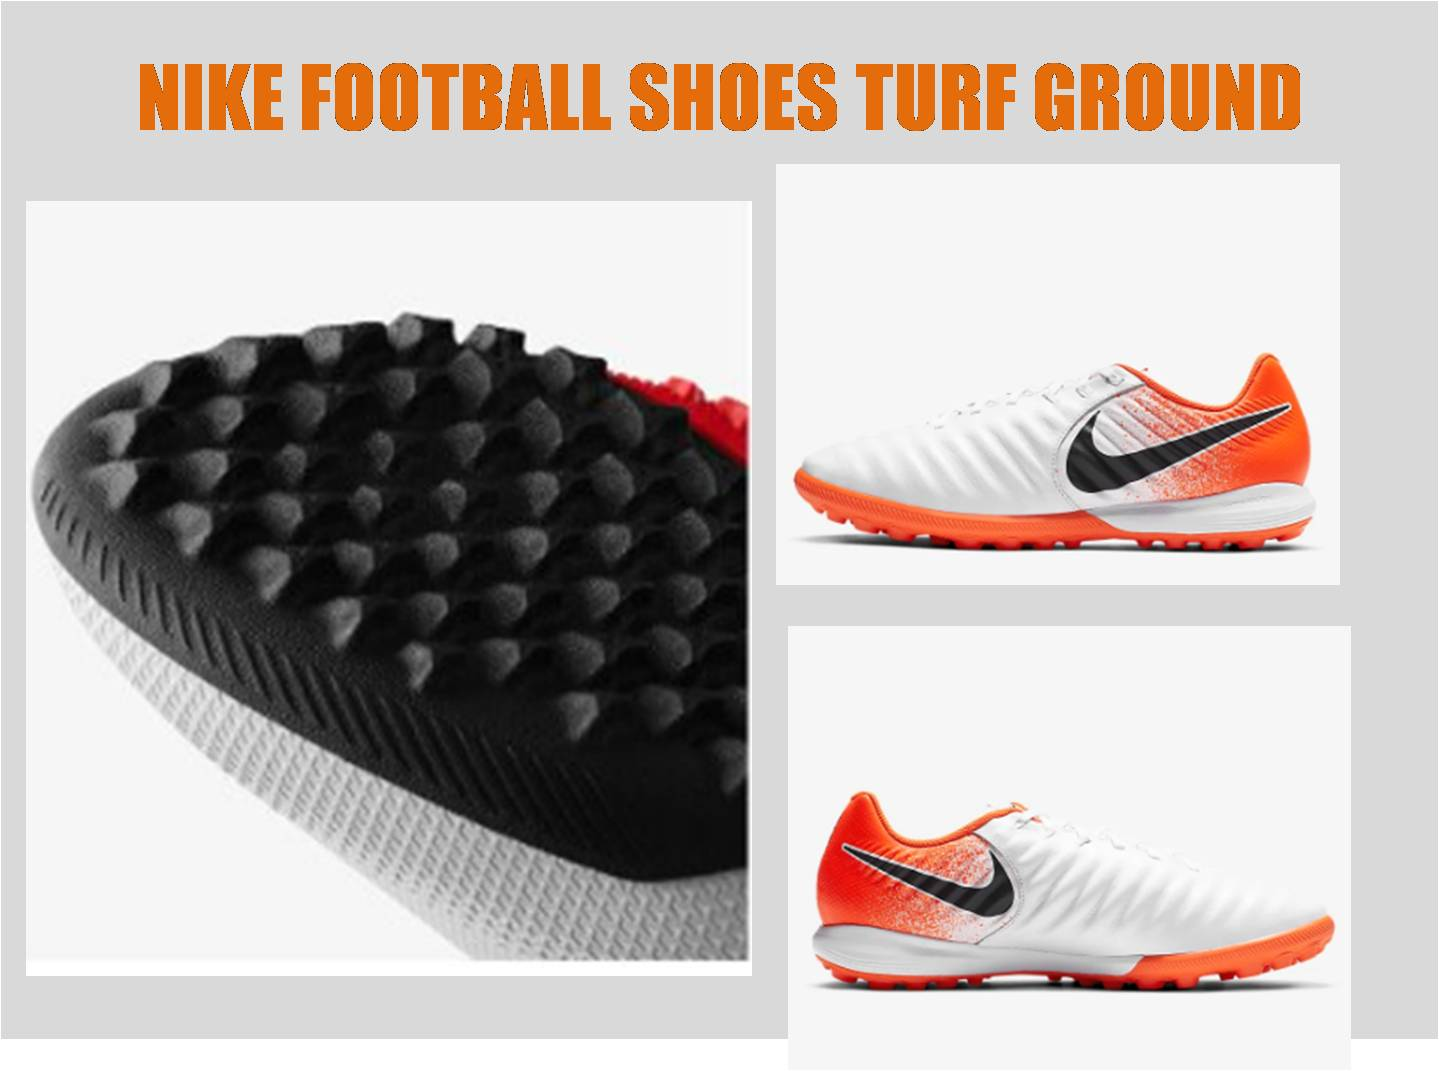 NIKE_FOOTBALL_SHOES_FOR_TURF_GROUND